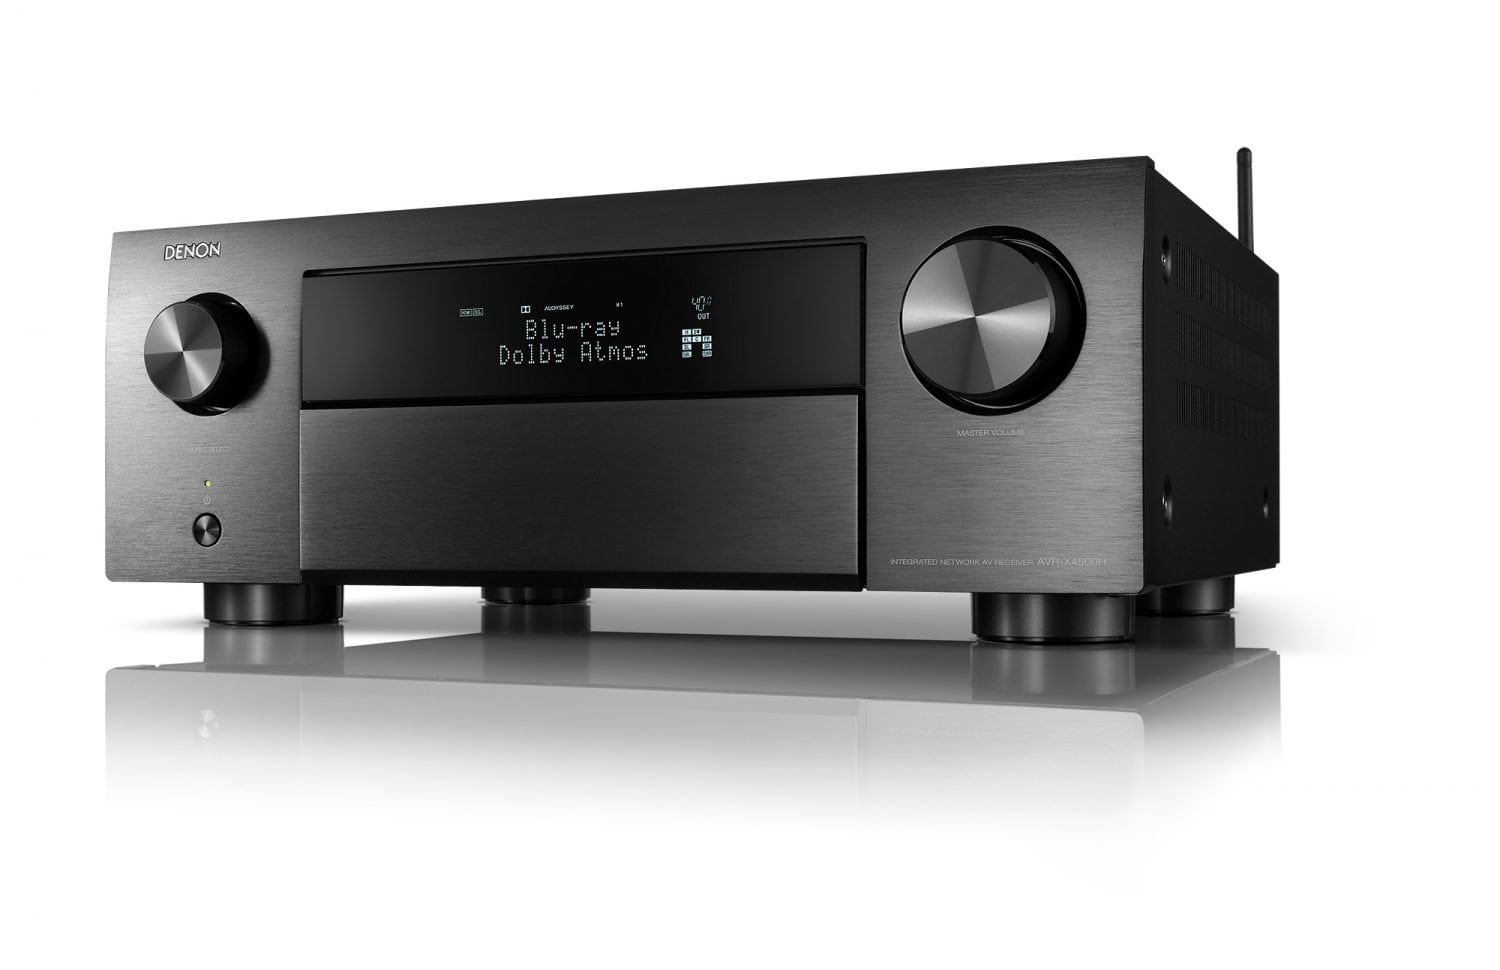 Denon Has Launched The AVR-X4500H and AVR-X3500H